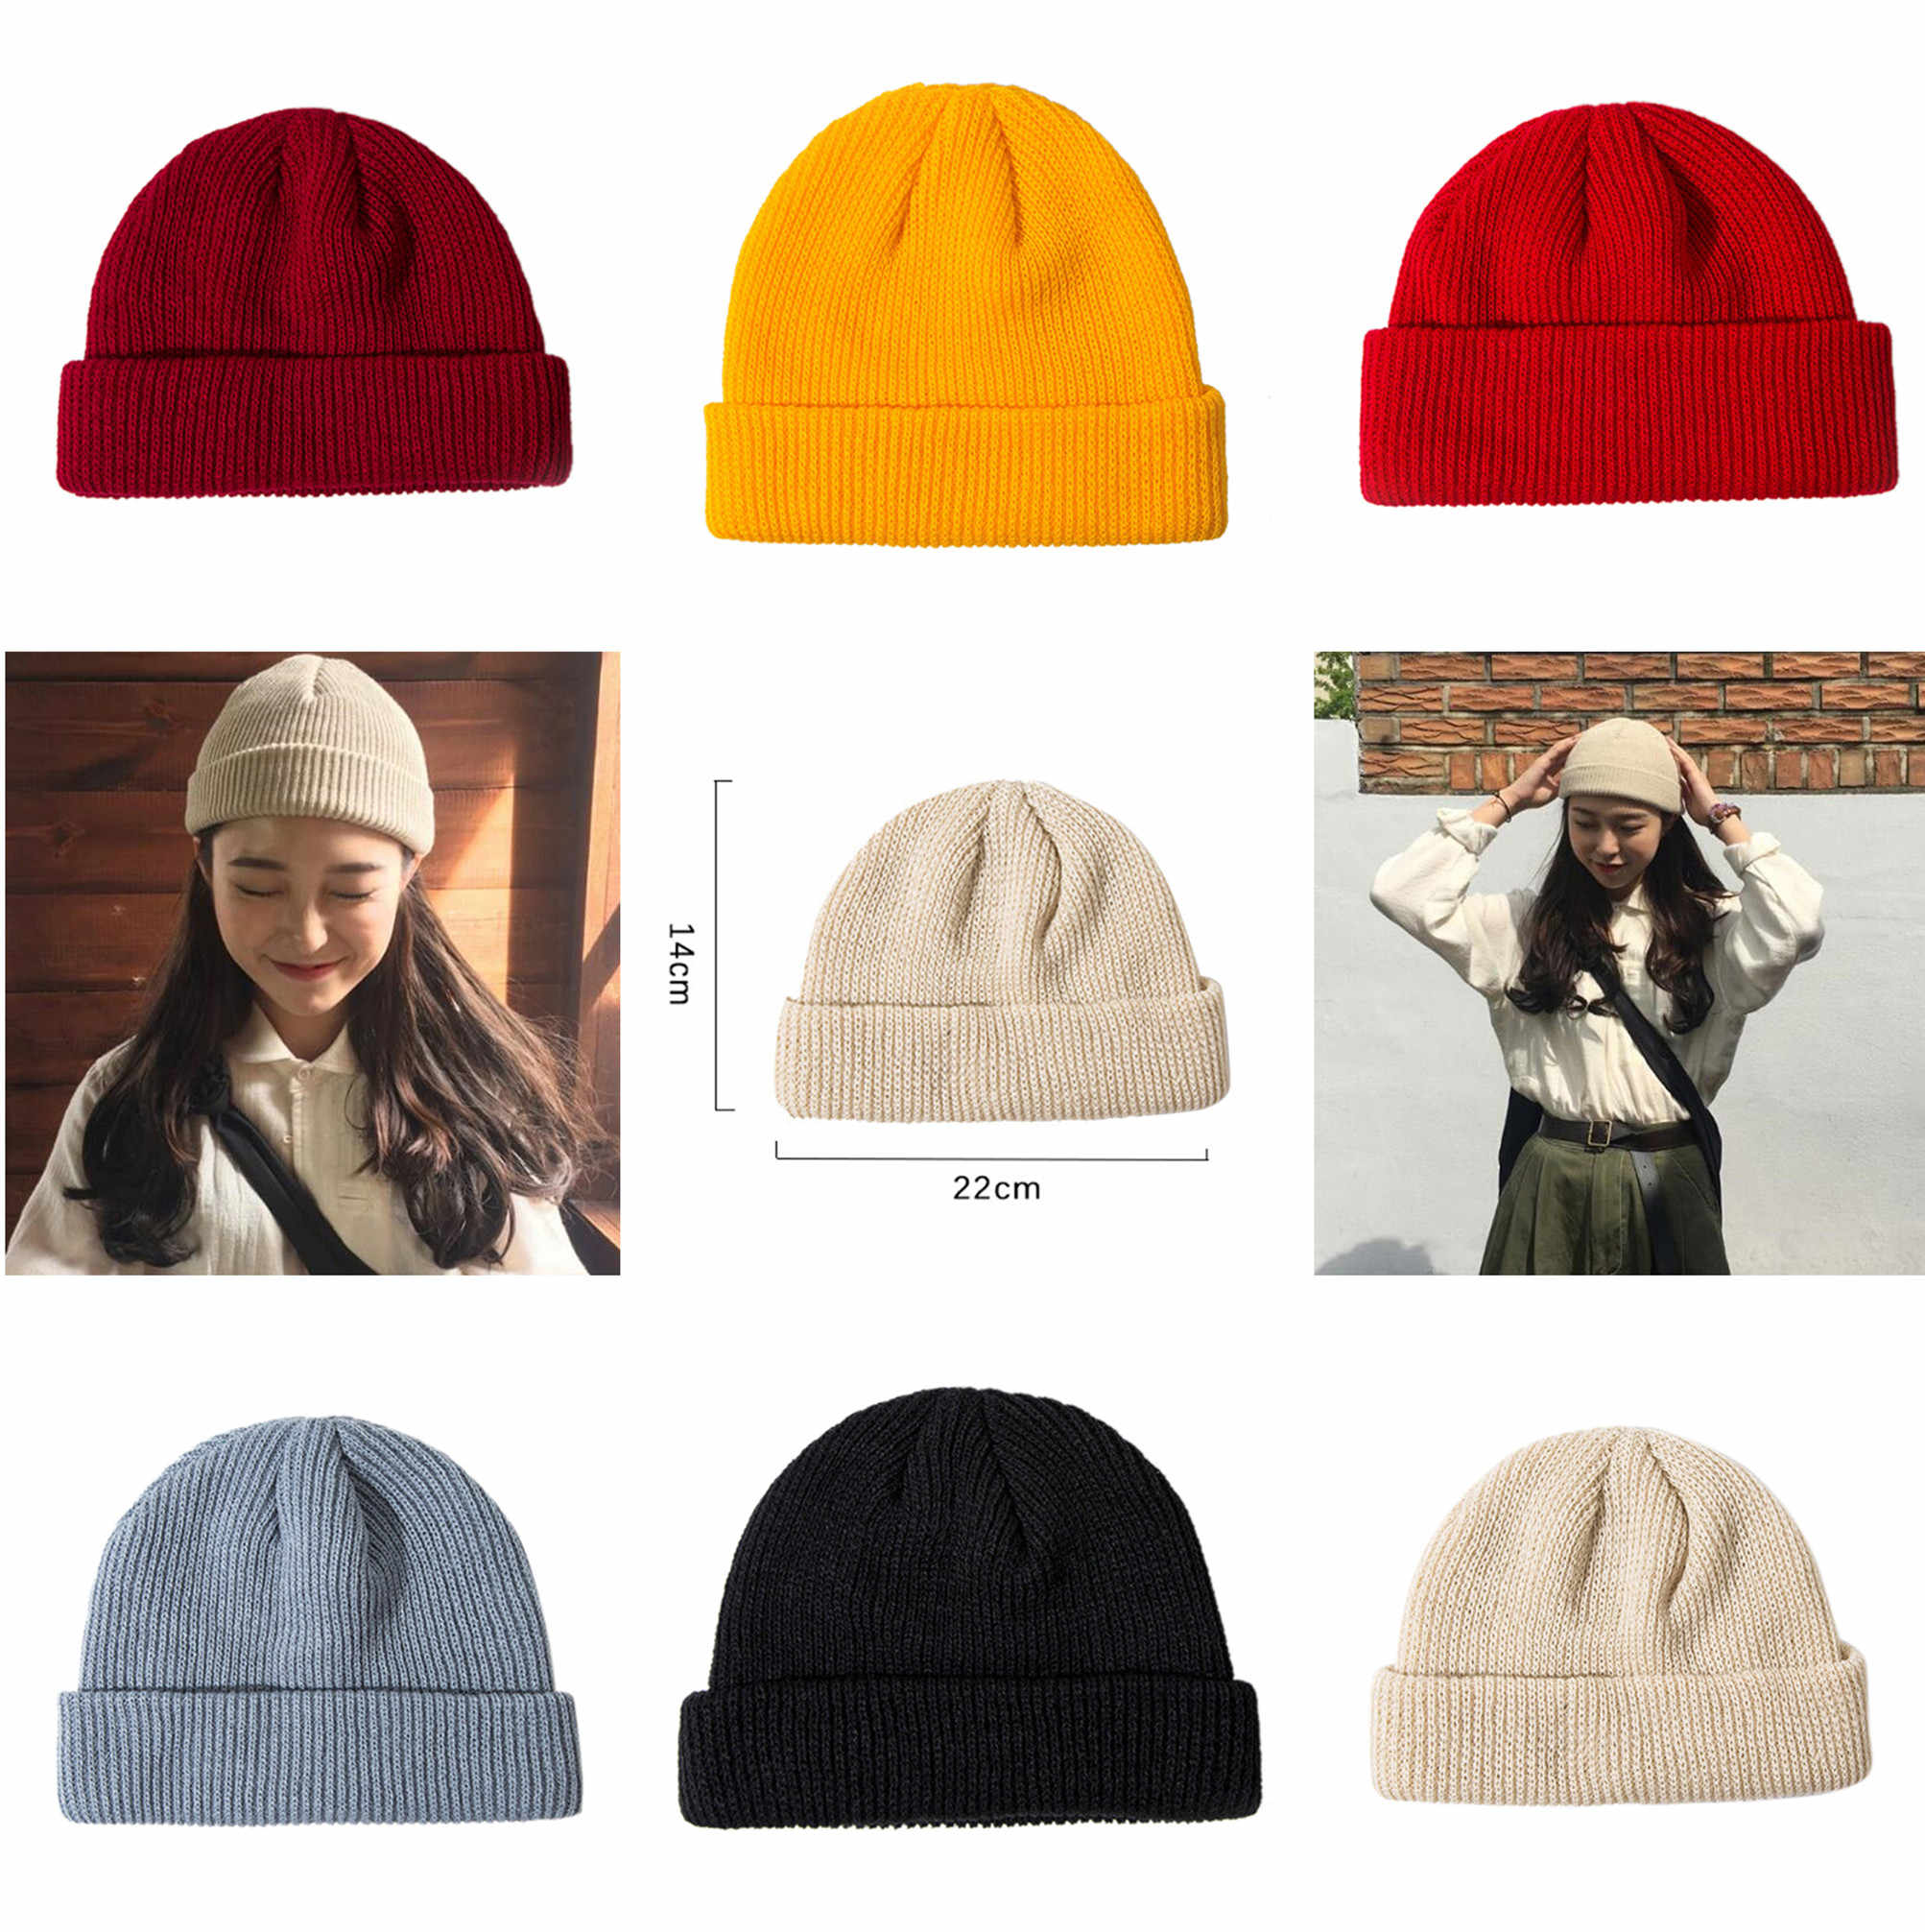 454bef642c5 Winter Hats For Woman New Beanies Knitted Solid Cute Hat Girls Autumn Female  Beanie Caps Warmer